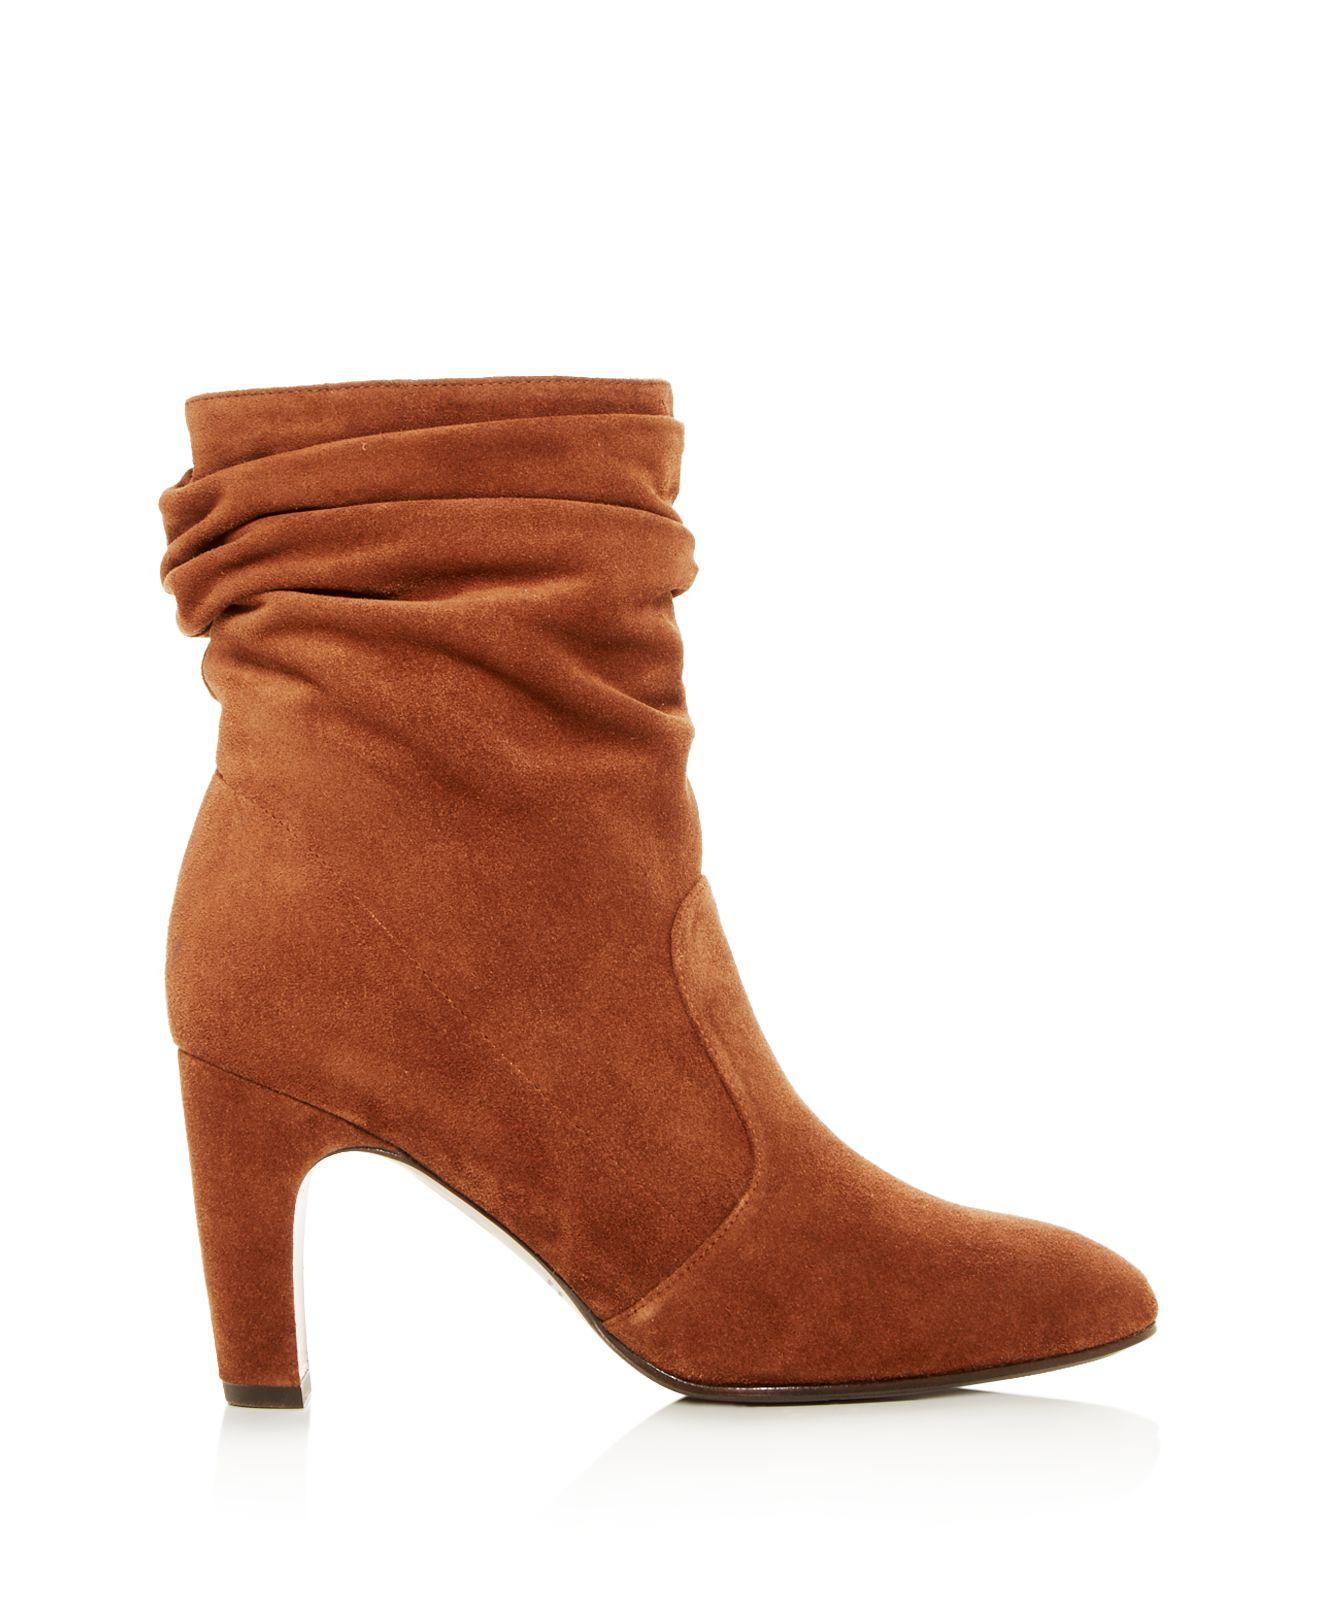 Chie Mihara Women's Jazz Suede Slouch High-Heel Boots SOVGJ08zN